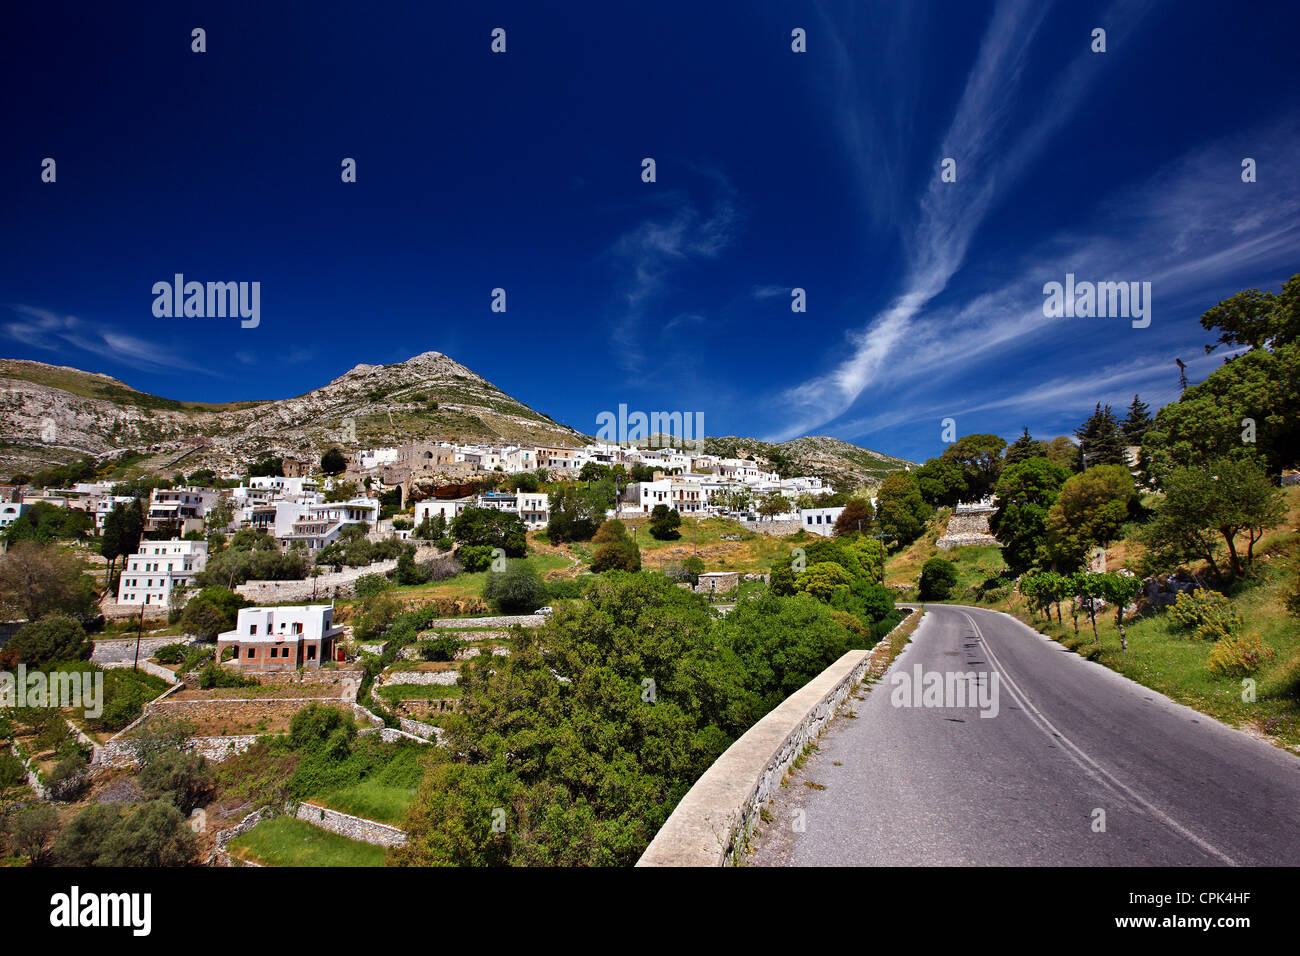 Apiranthos (or 'Apeiranthos')  village, one of the most beautiful mountainous villages of Naxos island, - Stock Image